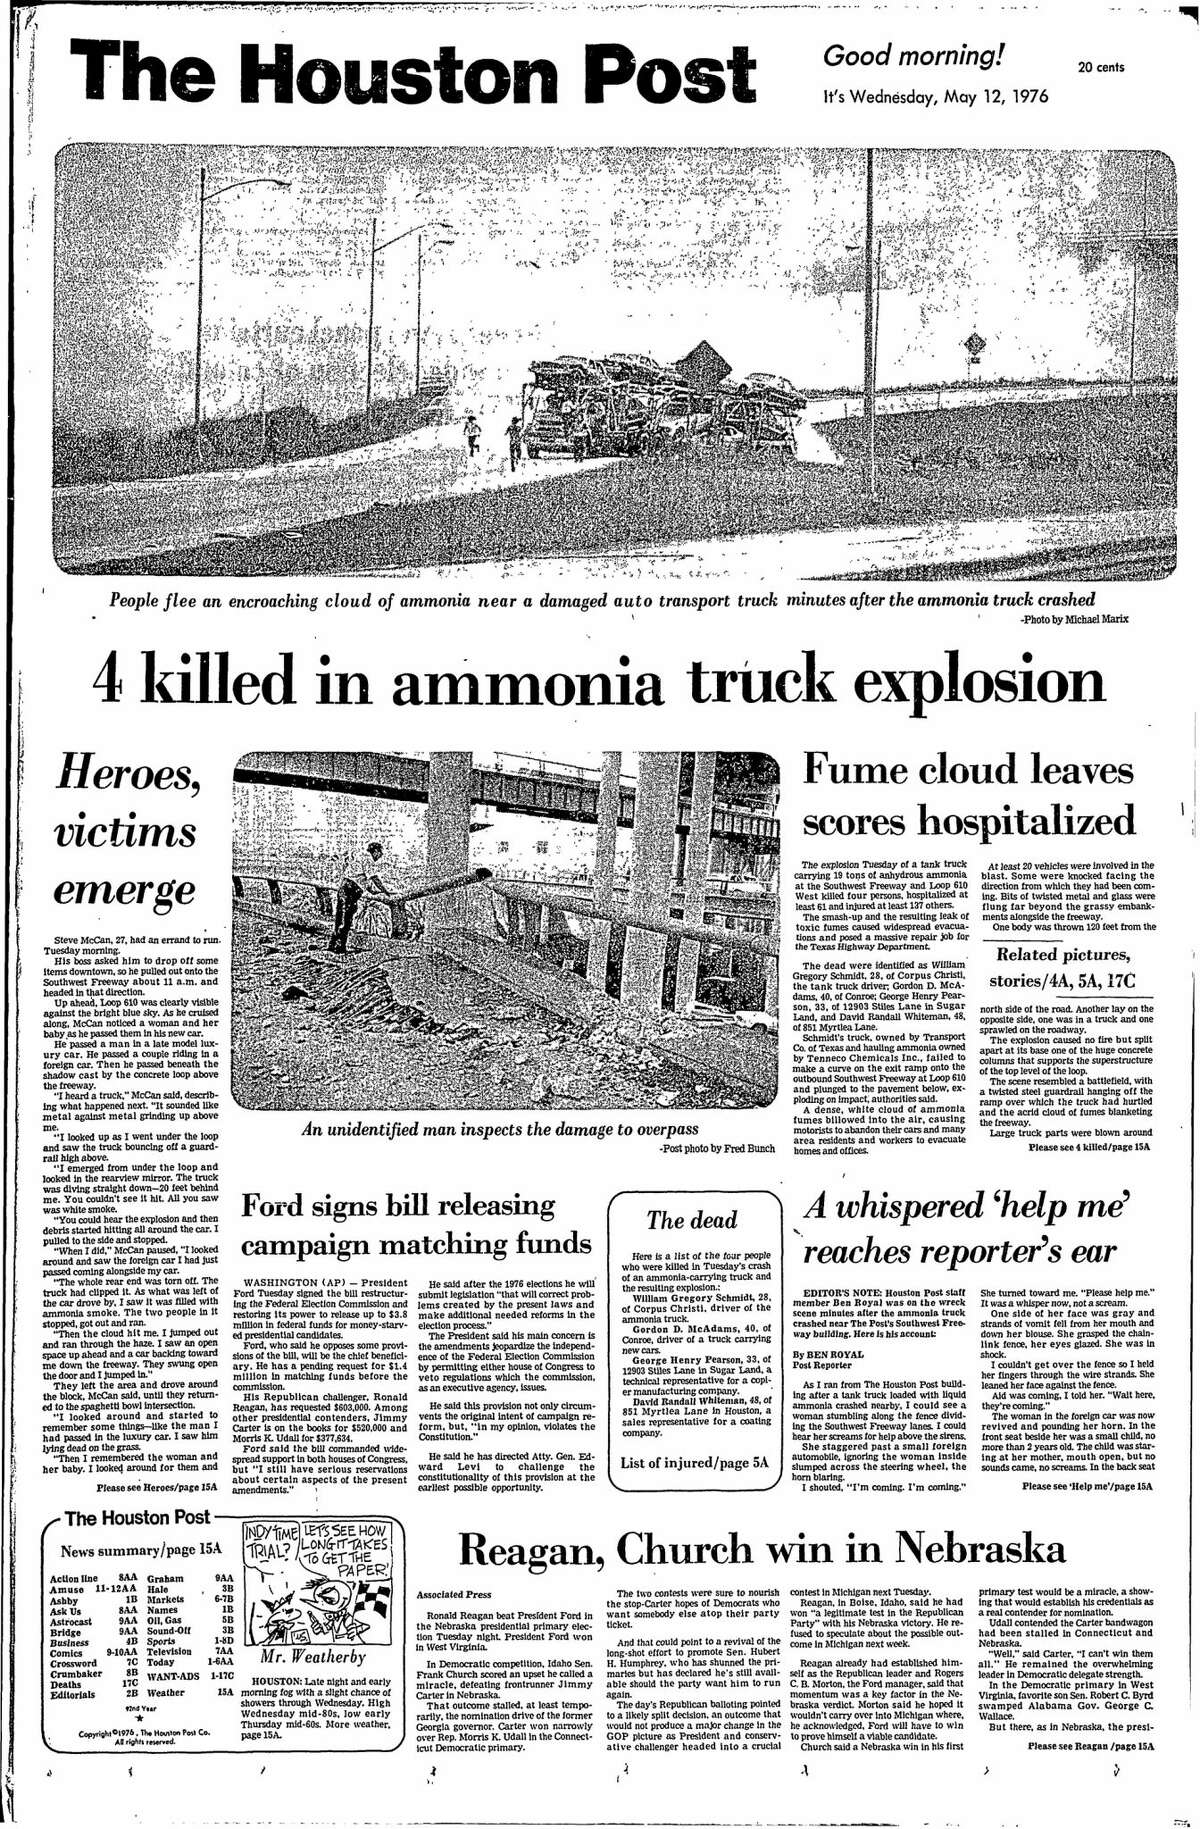 Houston Post front page from May 12, 1976.